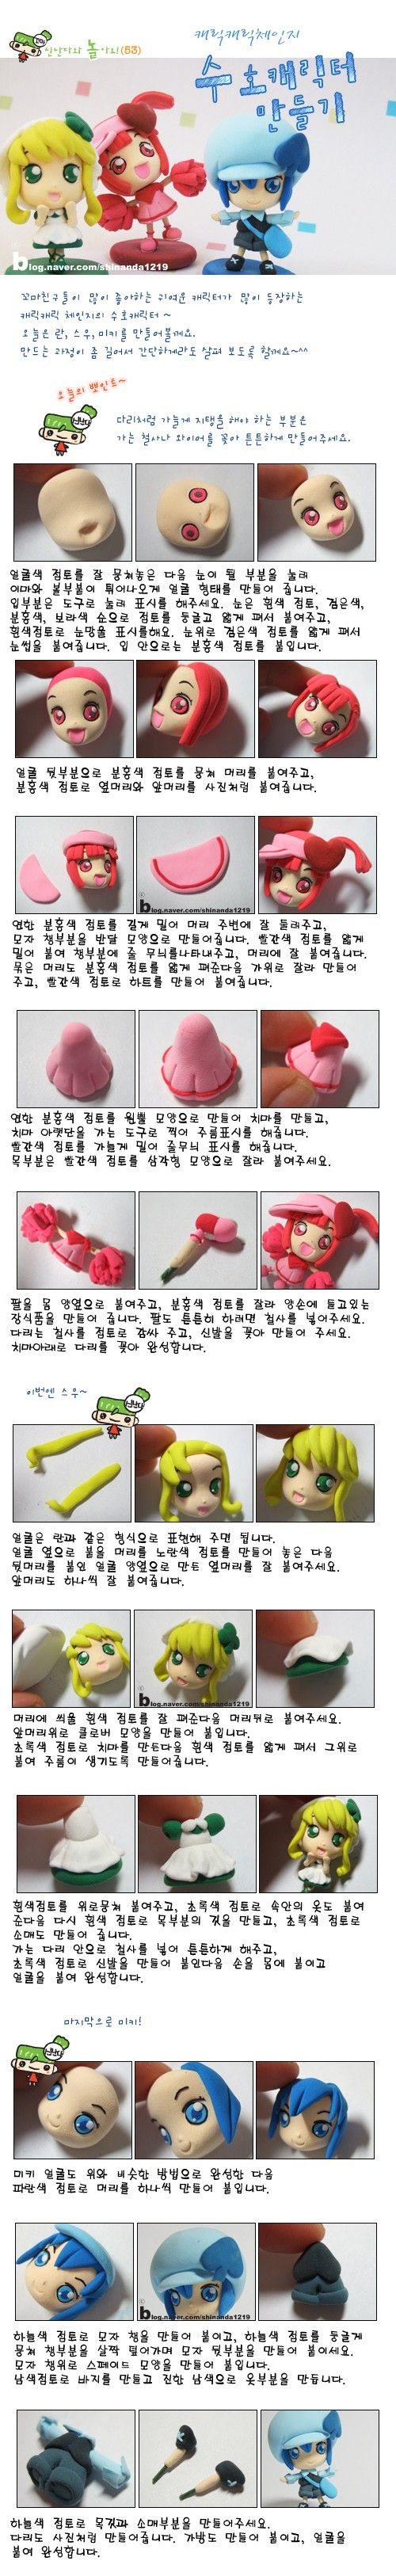 How to make a Girl in Polymer Clay or Fimo - Tutorial